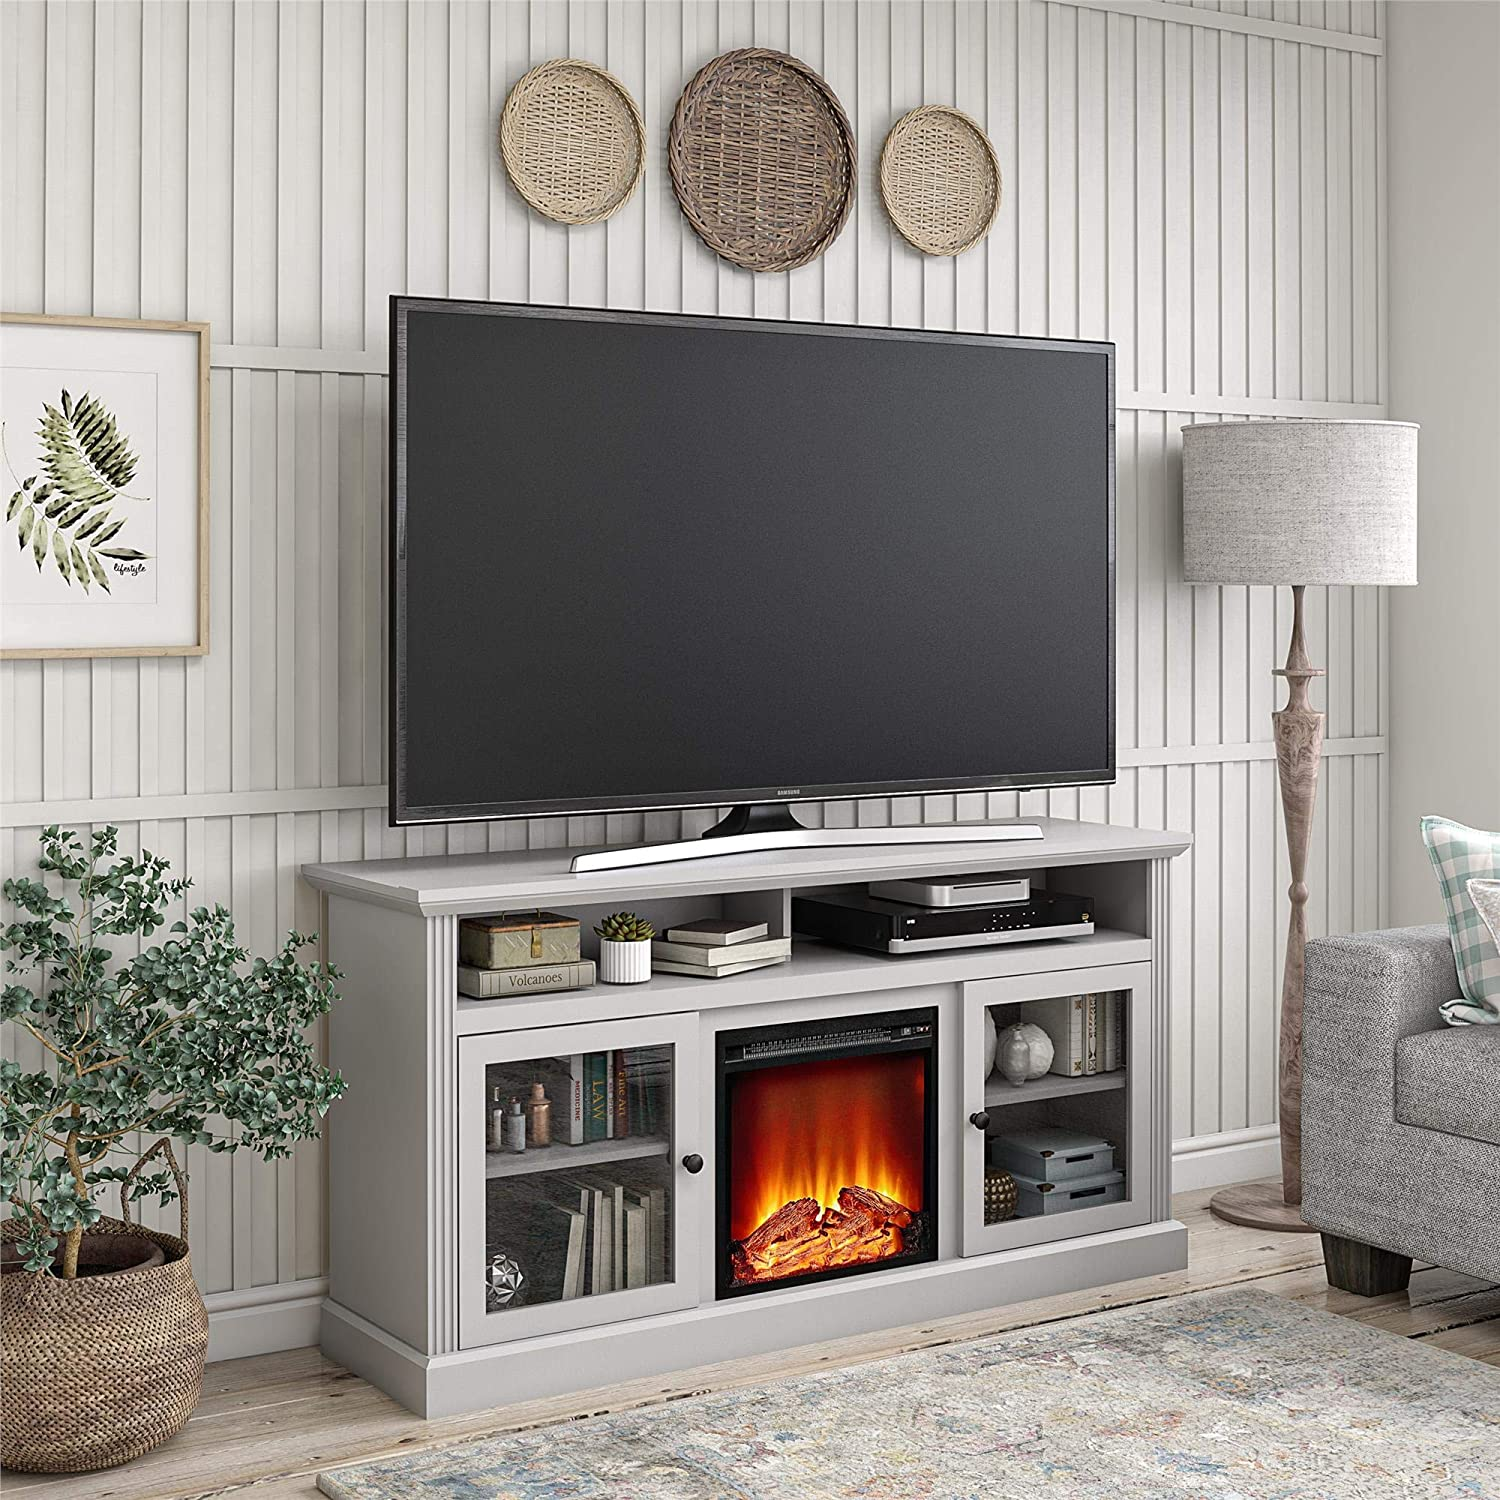 Ameriwood Home Chicago Fireplace 65 inch TV Stand